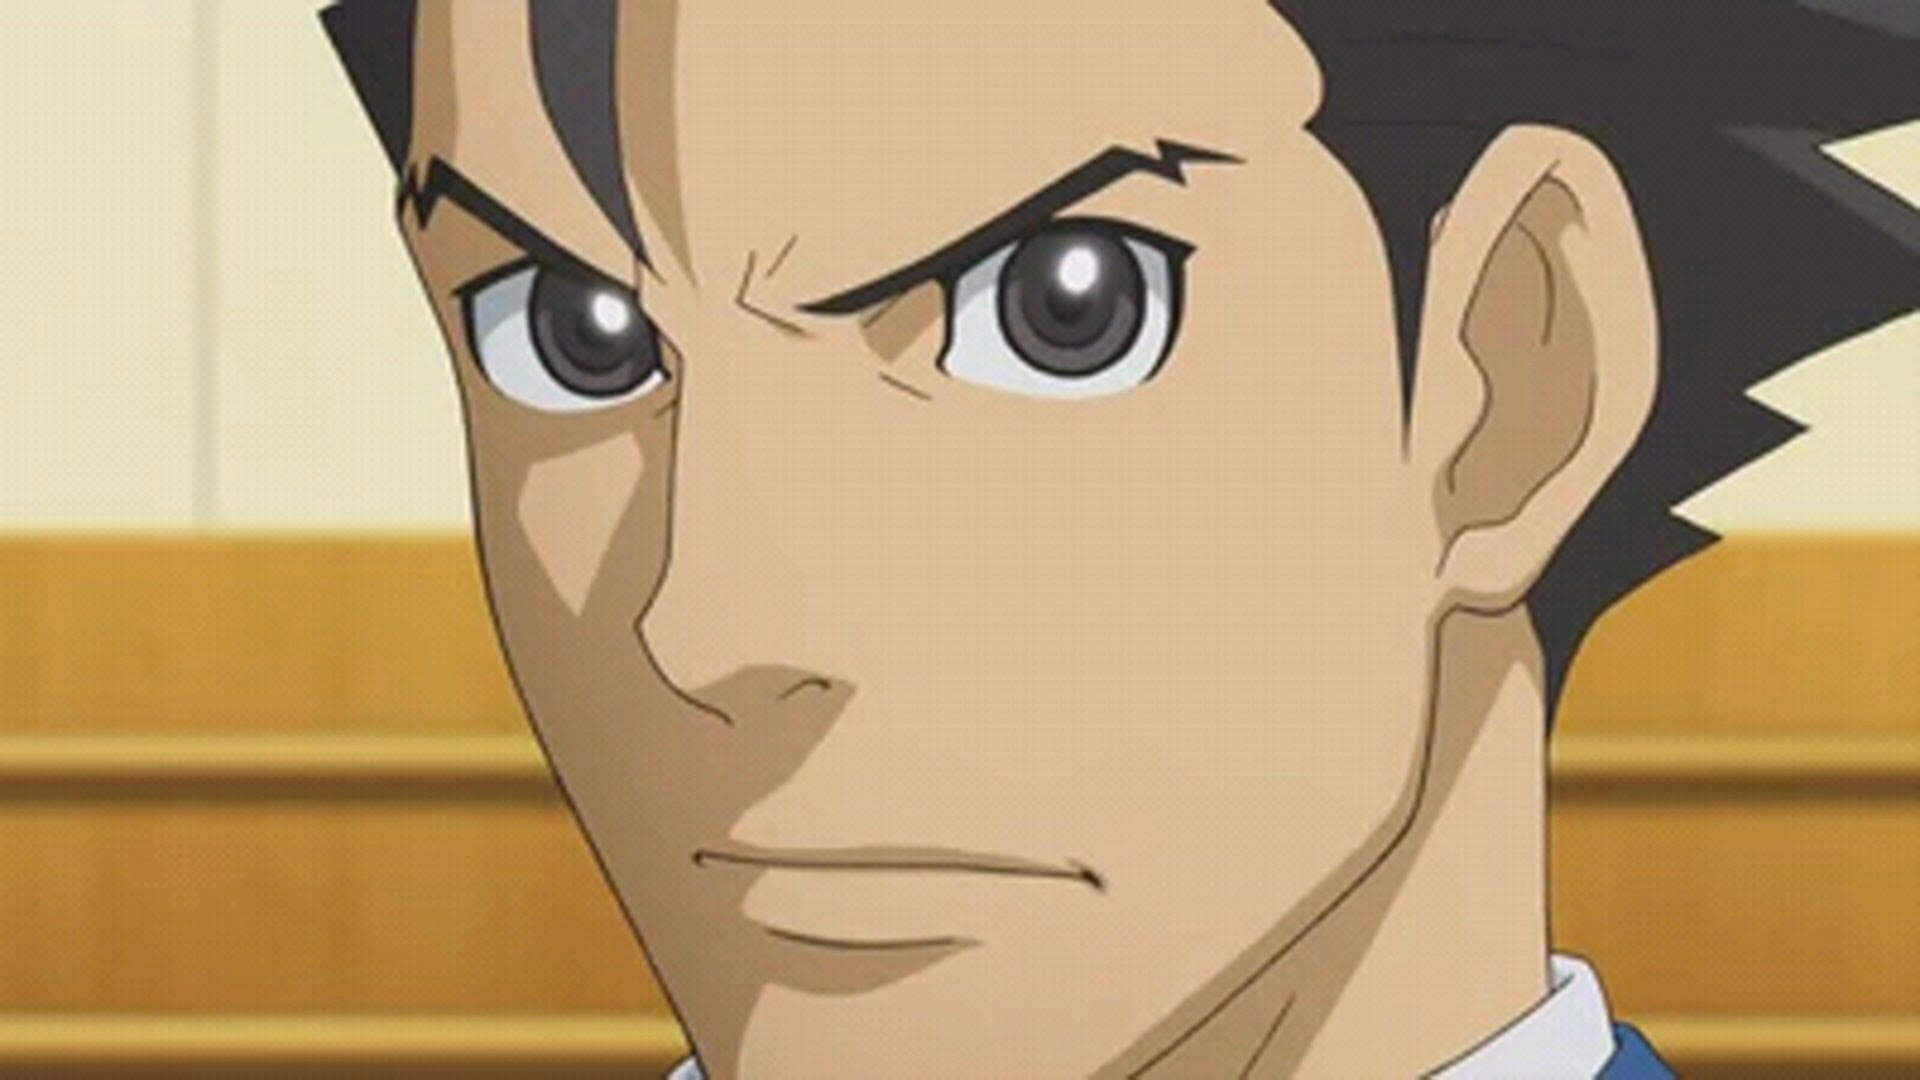 Ace Attorney Anime Episode 12 Review